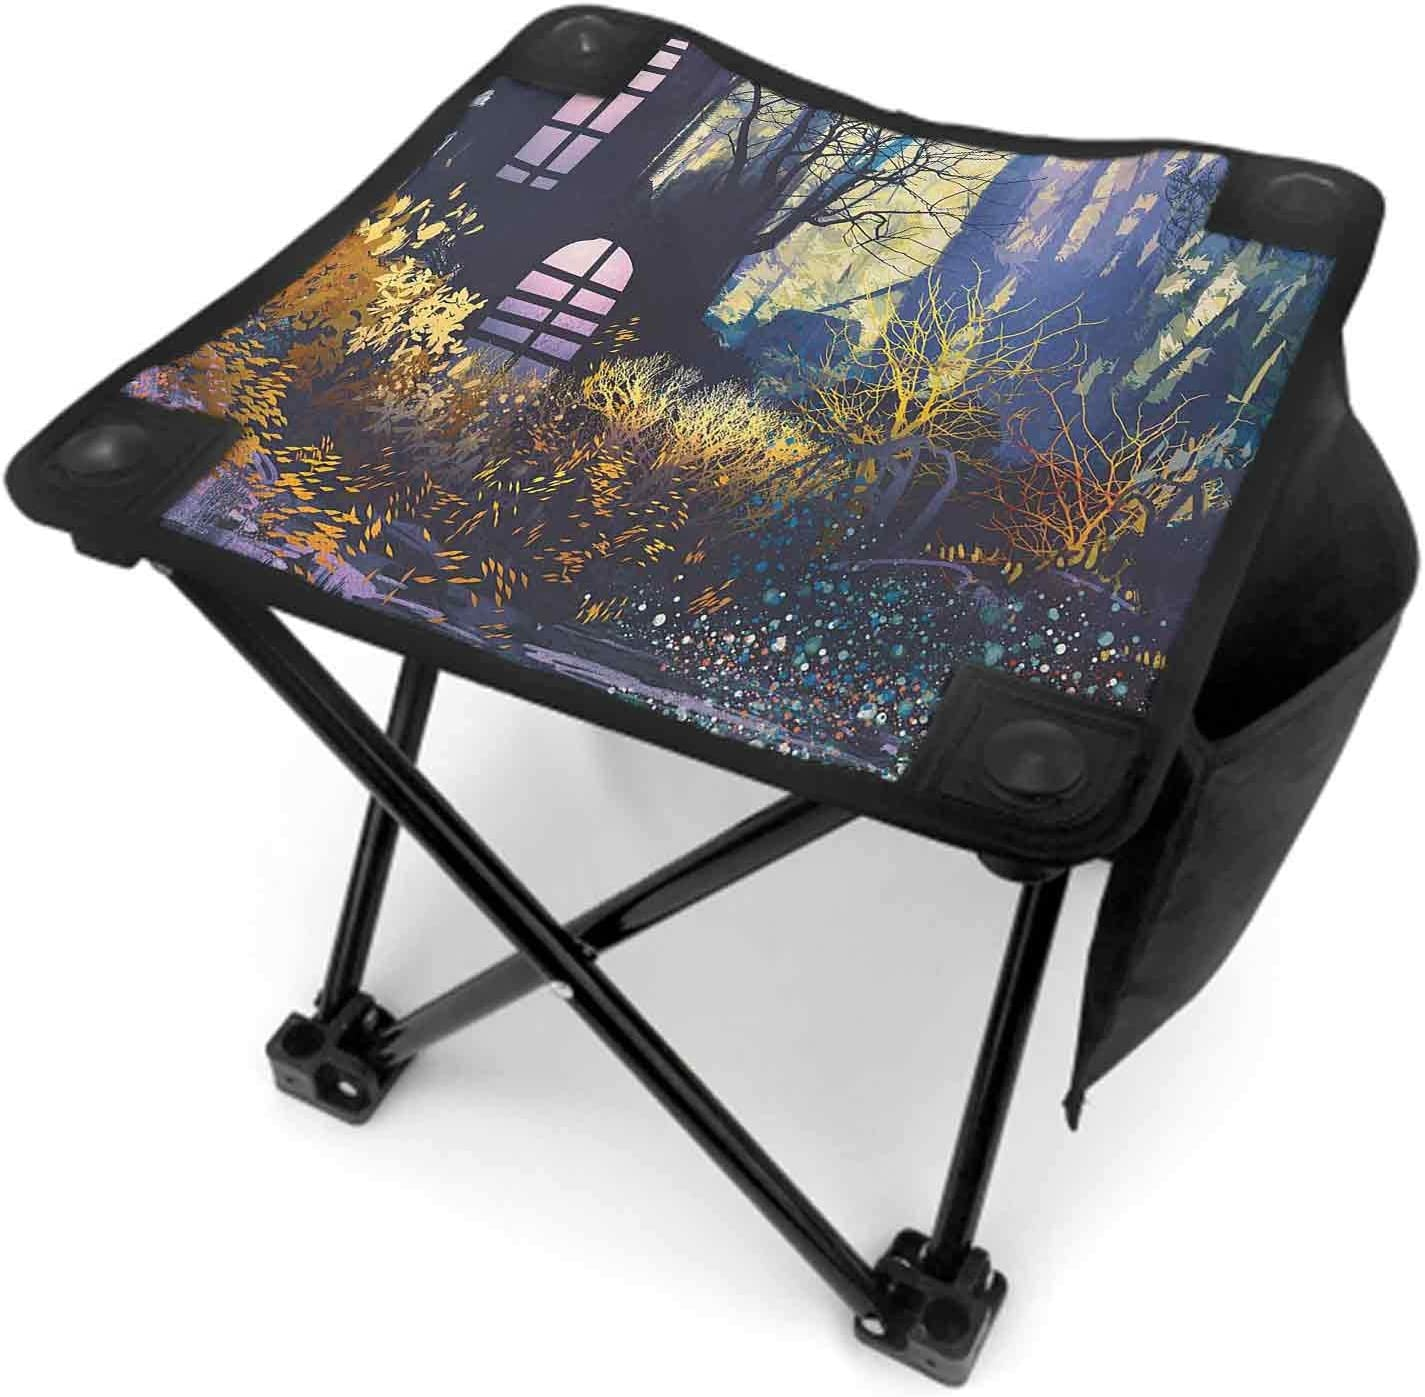 Fantasy Folding Stool Portable with Carry Bag, Mystical House in Tree Trunk with Windows Ancient Lost City Animation Nature Print Lightweight Sturdy Stool Multicolor